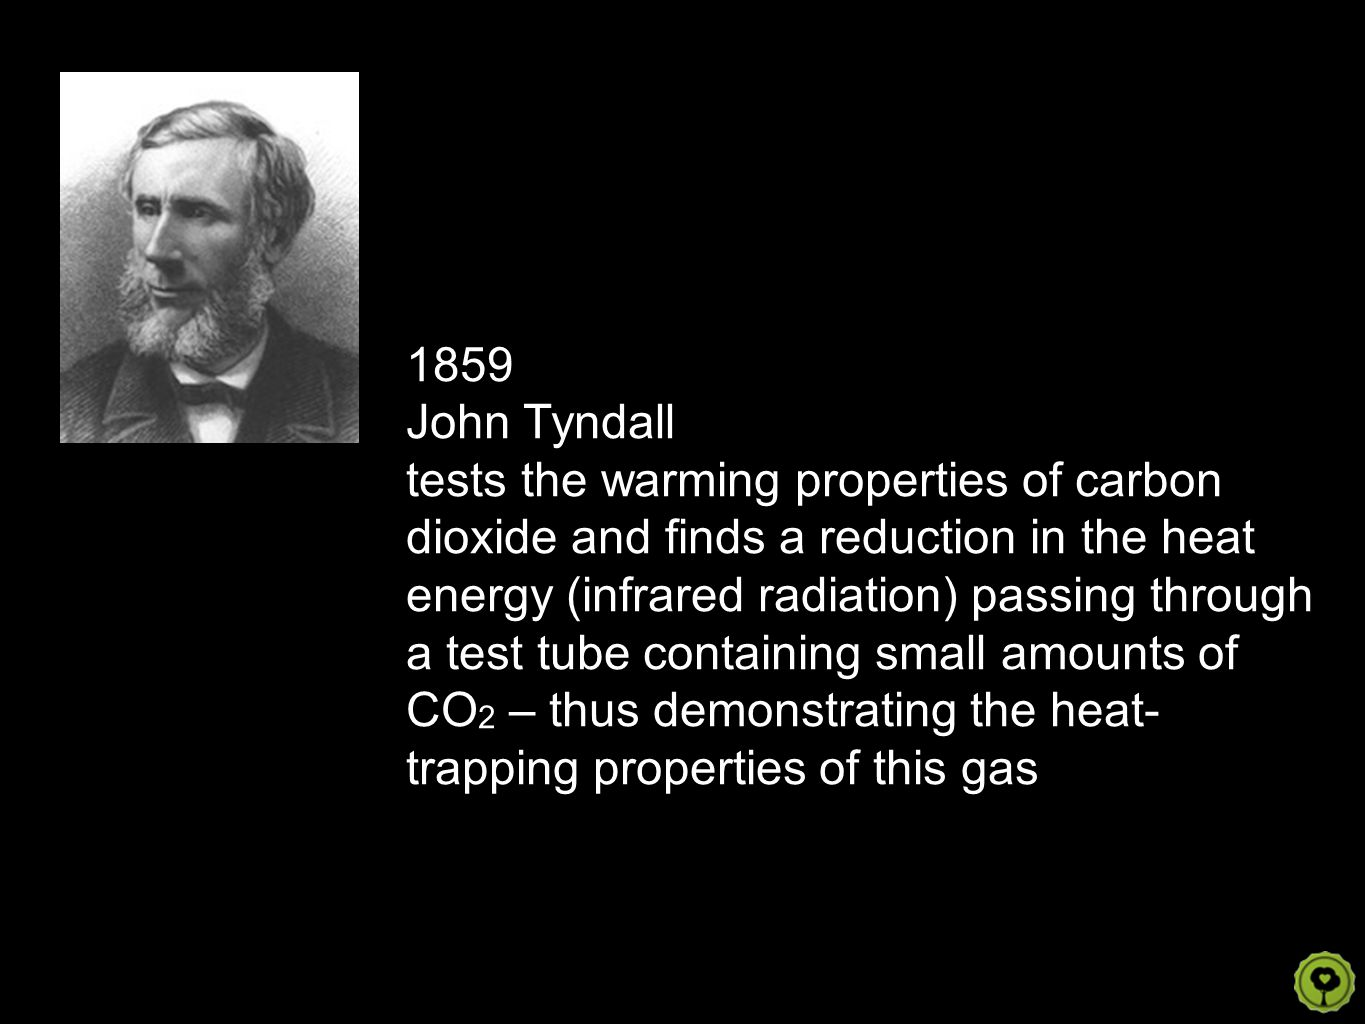 1859 John Tyndall tests the warming properties of carbon dioxide and finds a reduction in the heat energy (infrared radiation) passing through a test